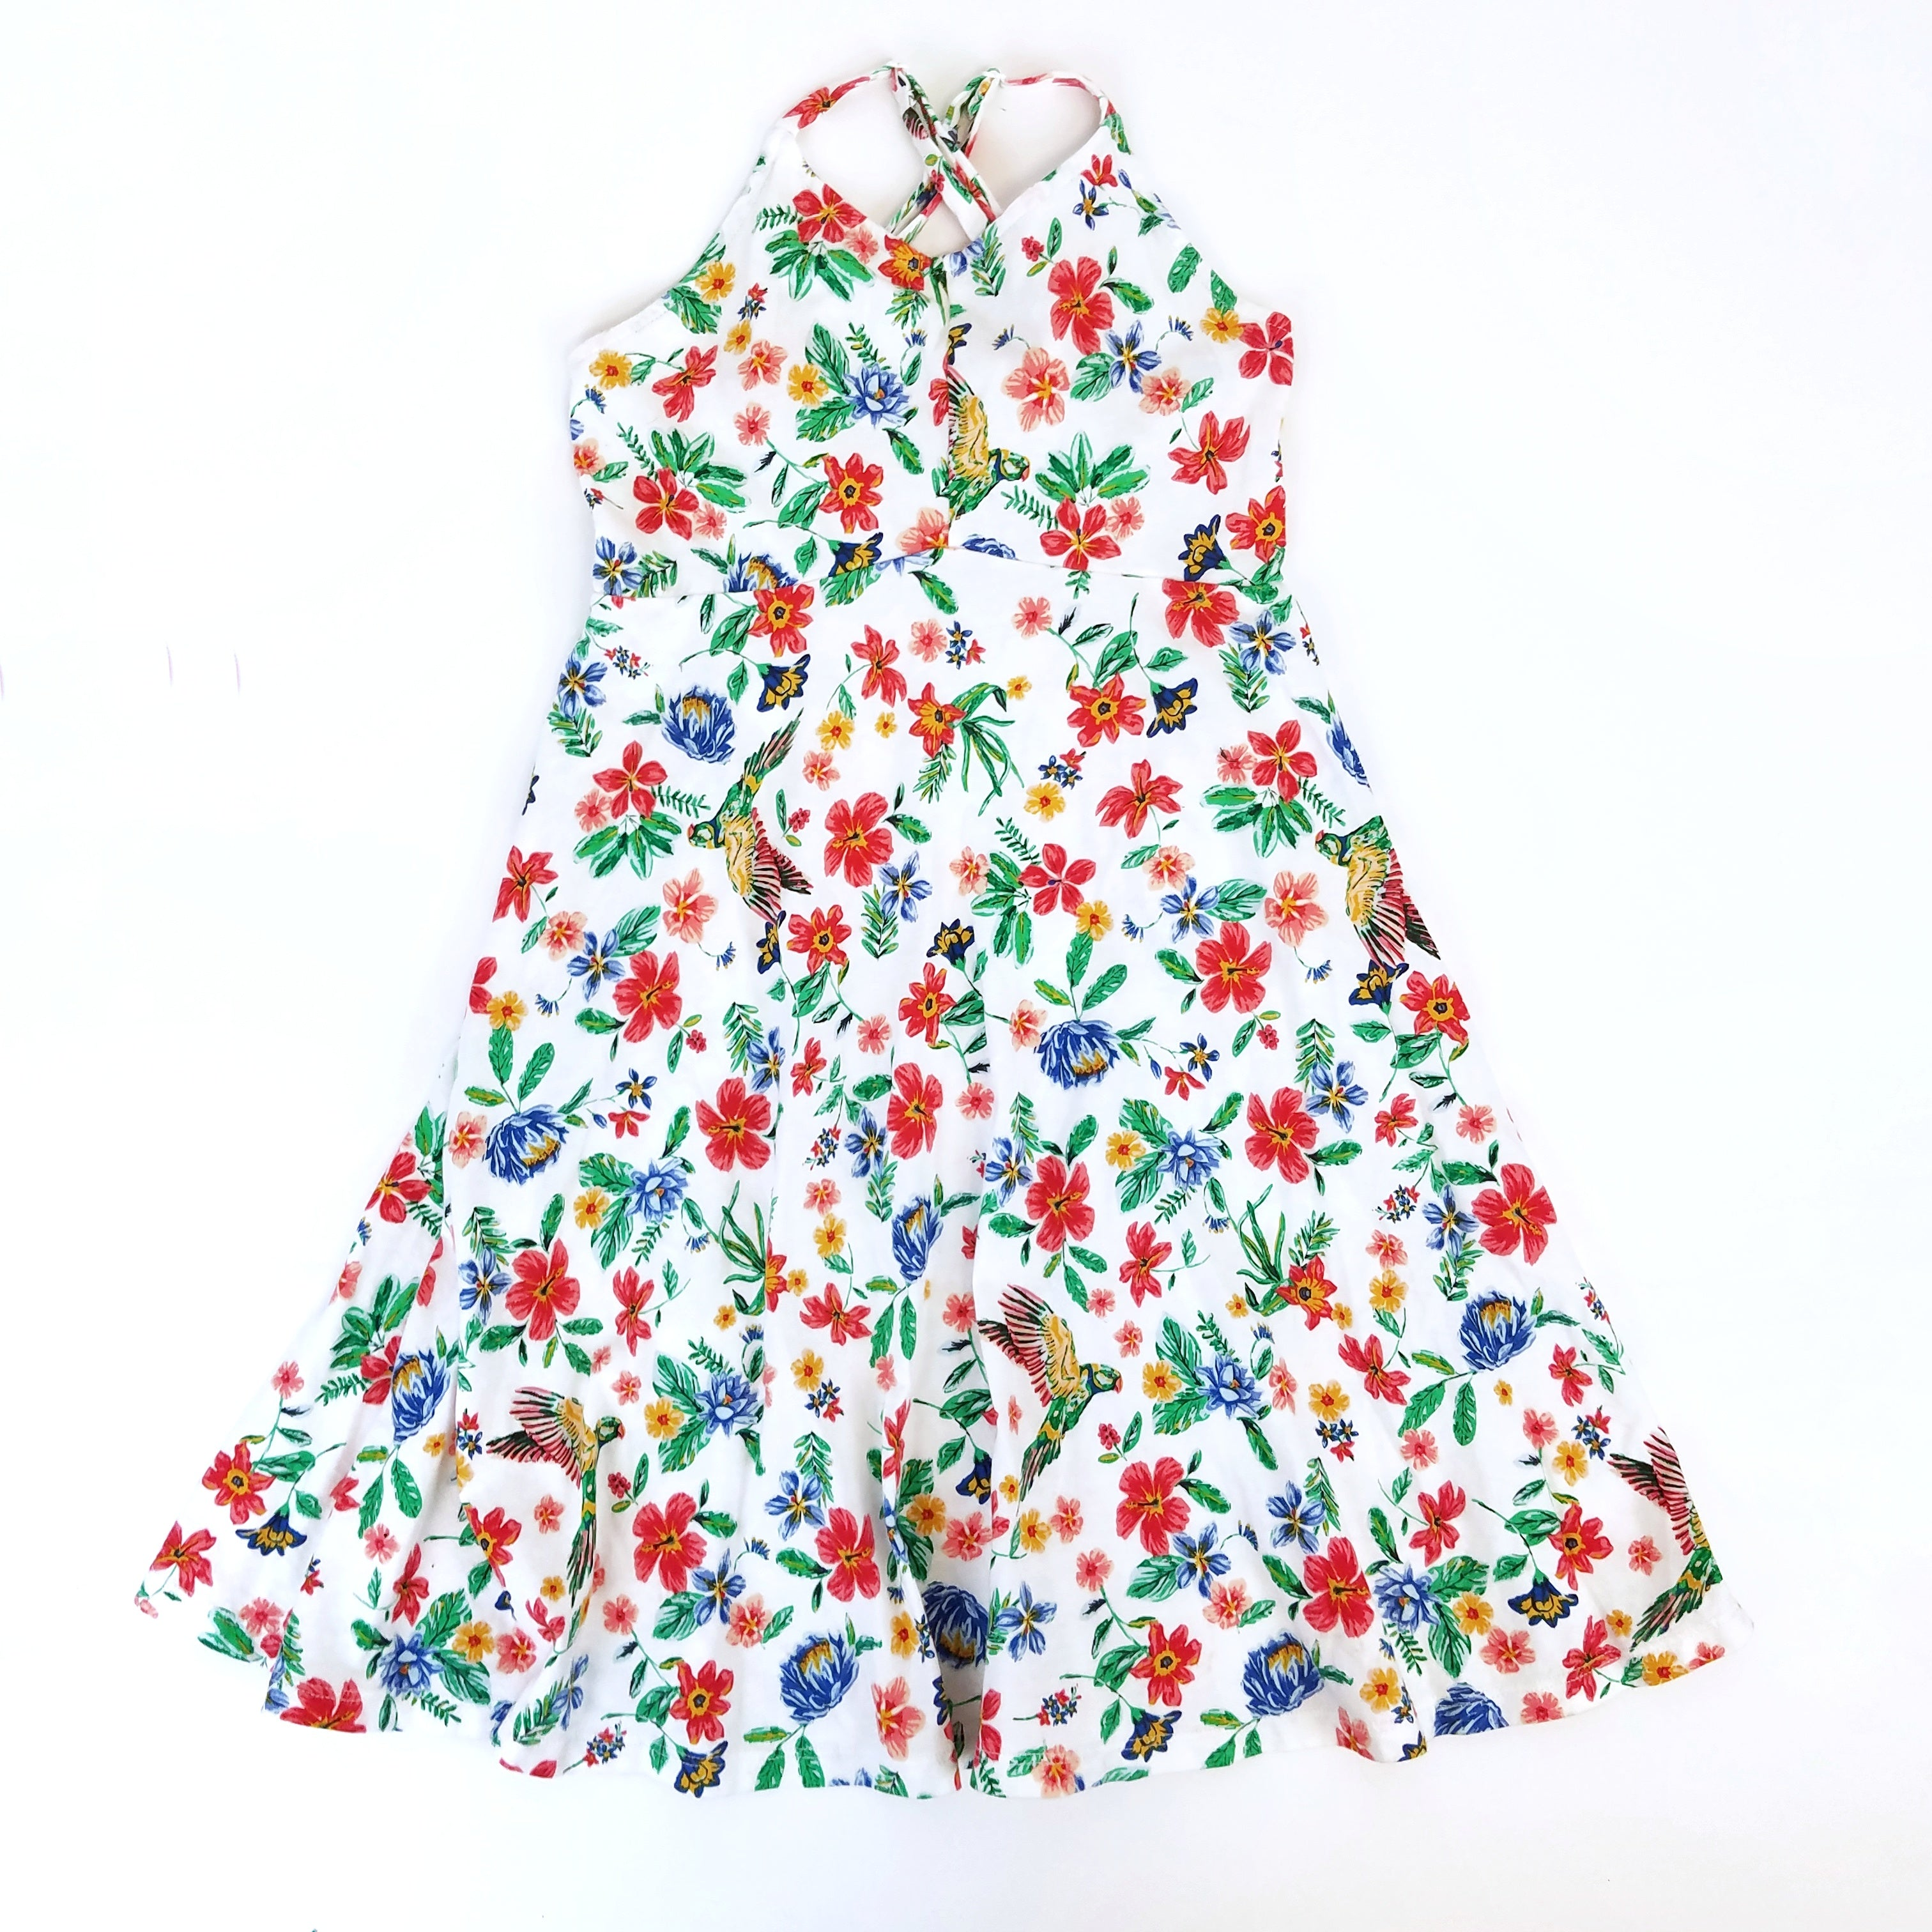 Sz 8 Hawaiian Halter Dress - Wild Child